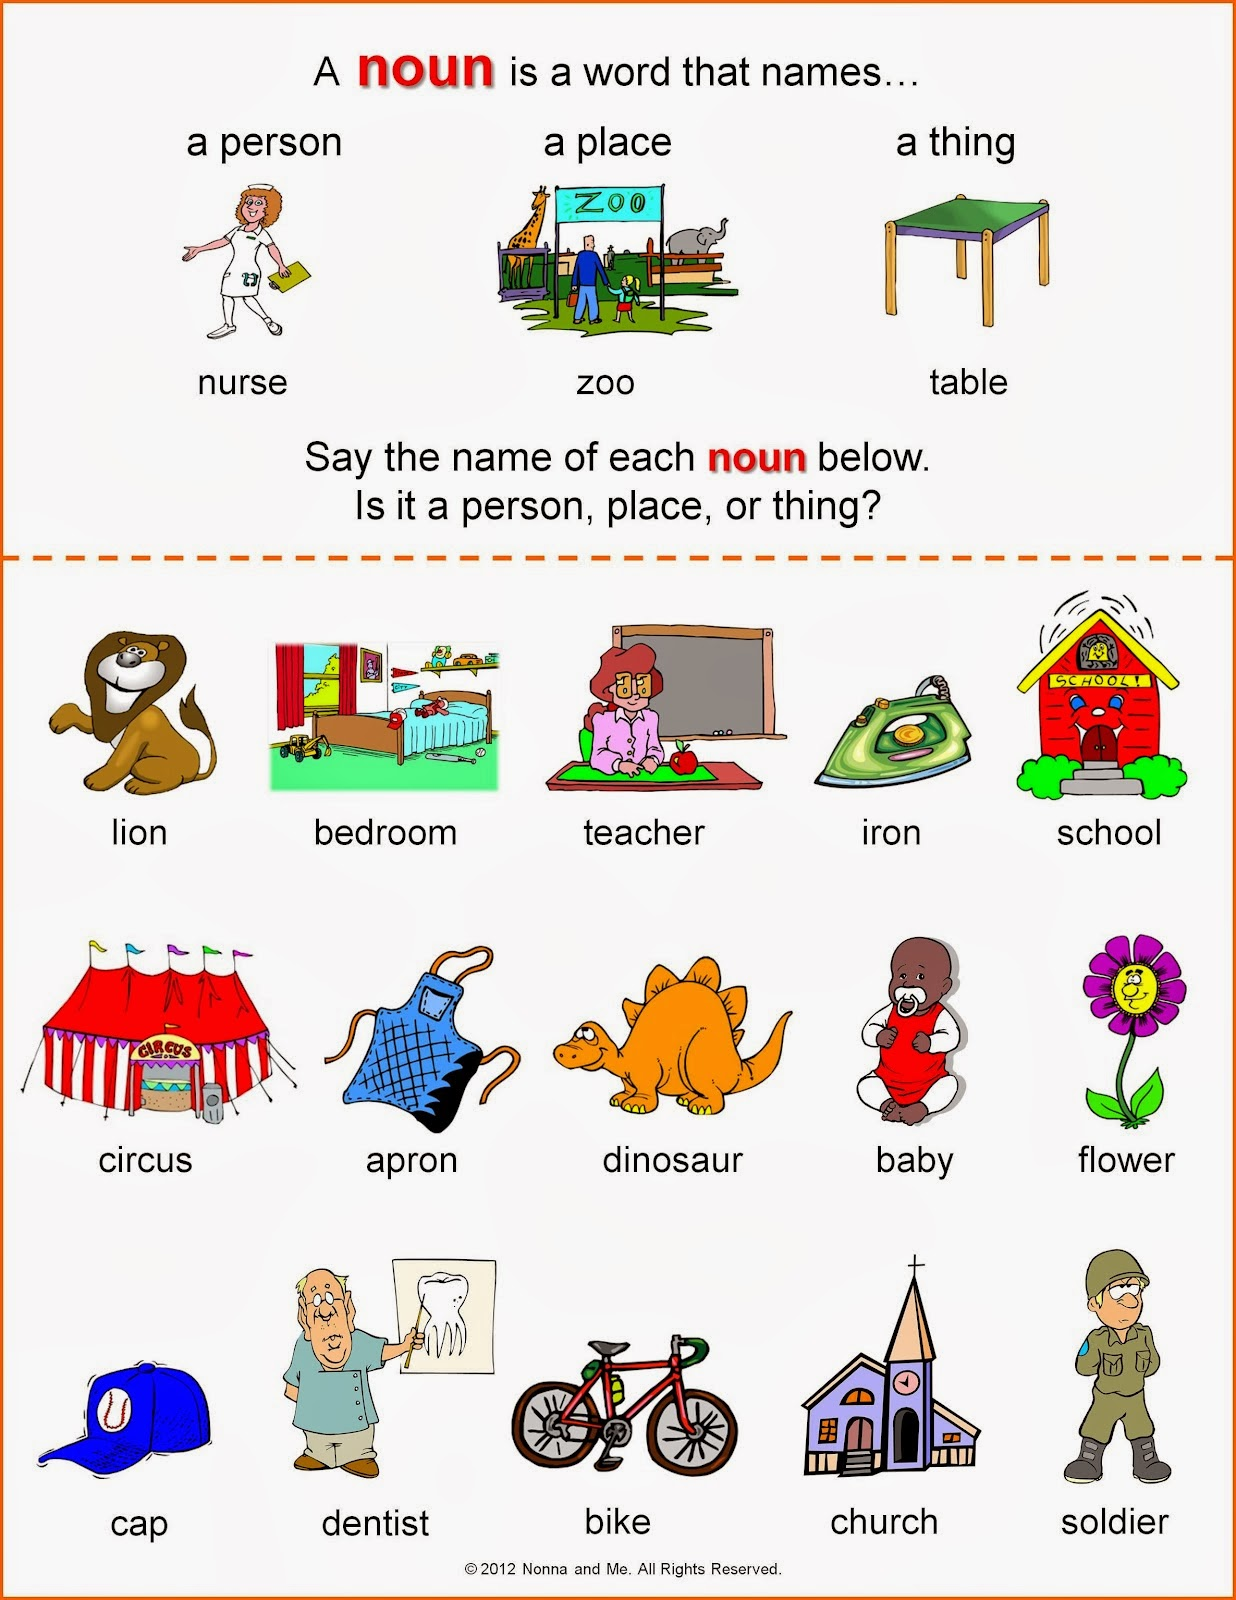 Preposition In Learn In Marathi All Complate: Welcome To Parts Of Speech 1: Nouns